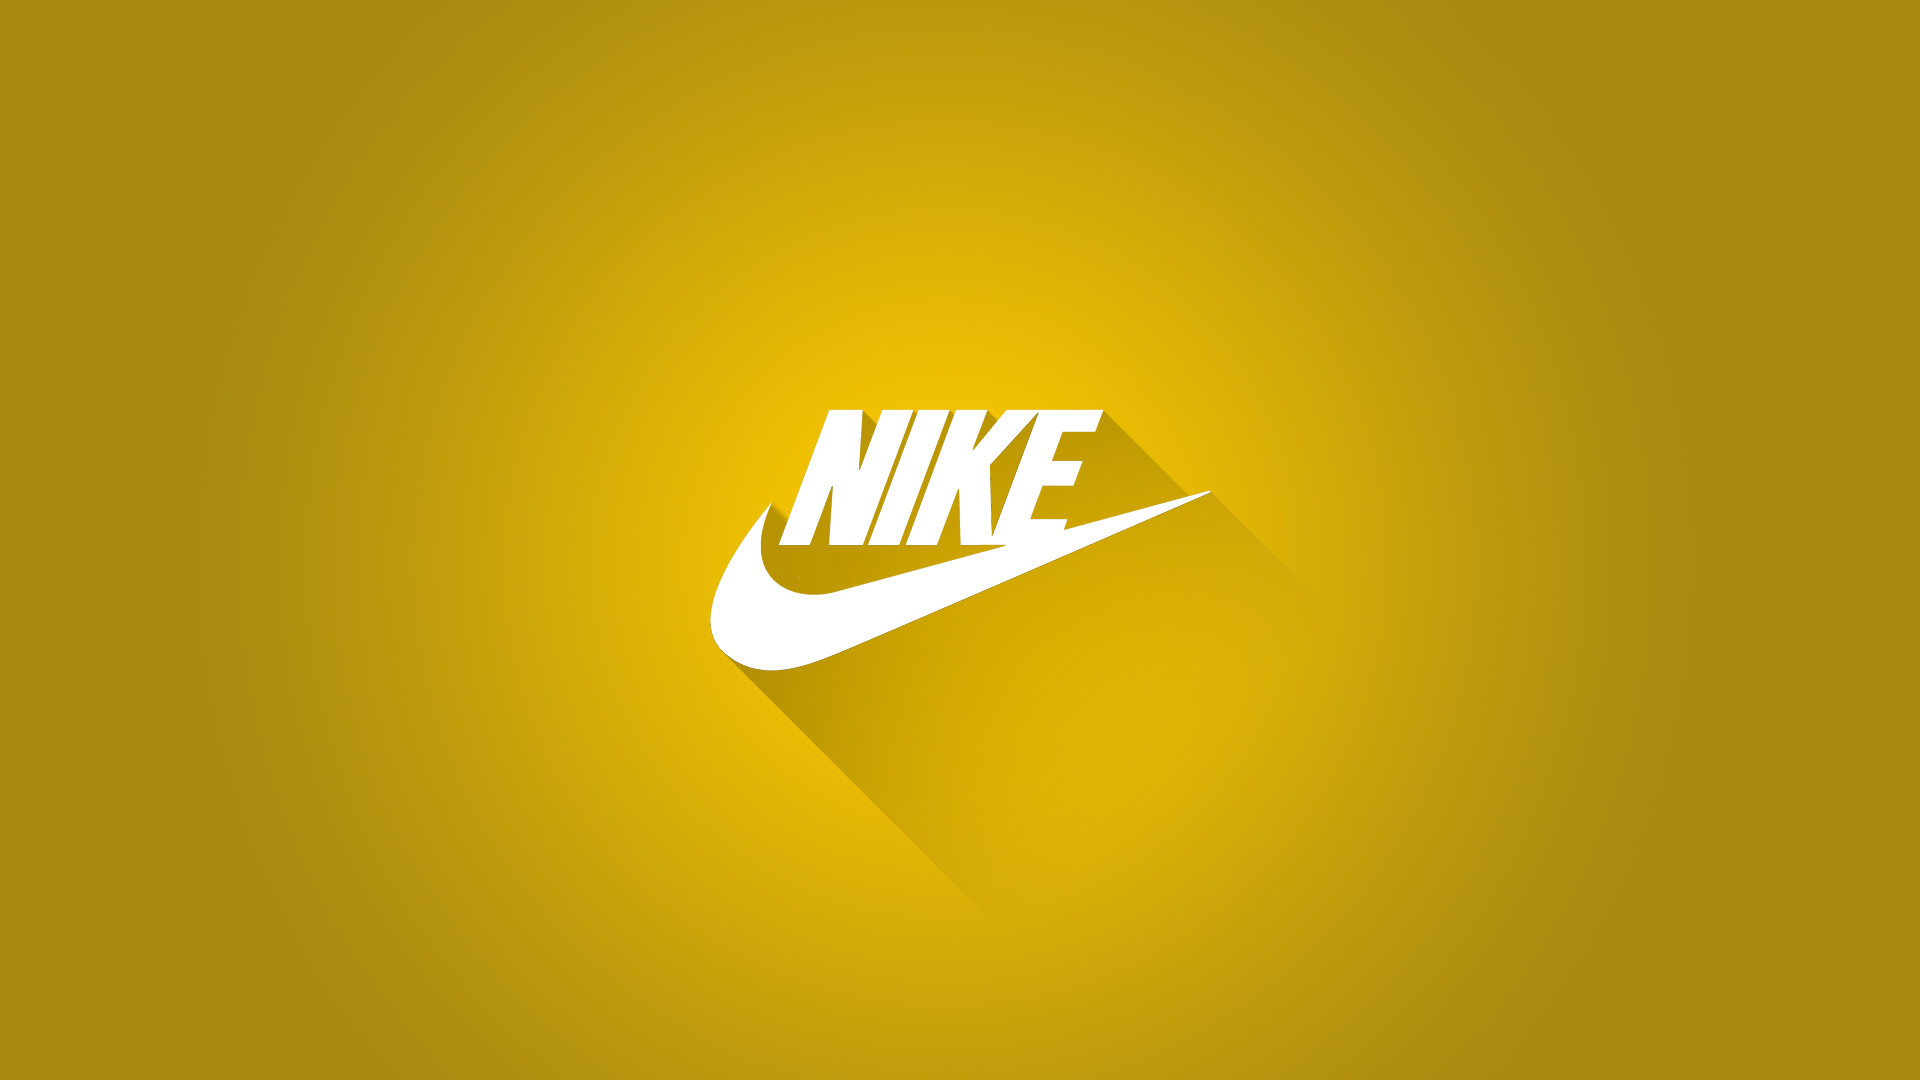 Nike logo wallpaper hd wallpapertag - Nike wallpaper hd ...